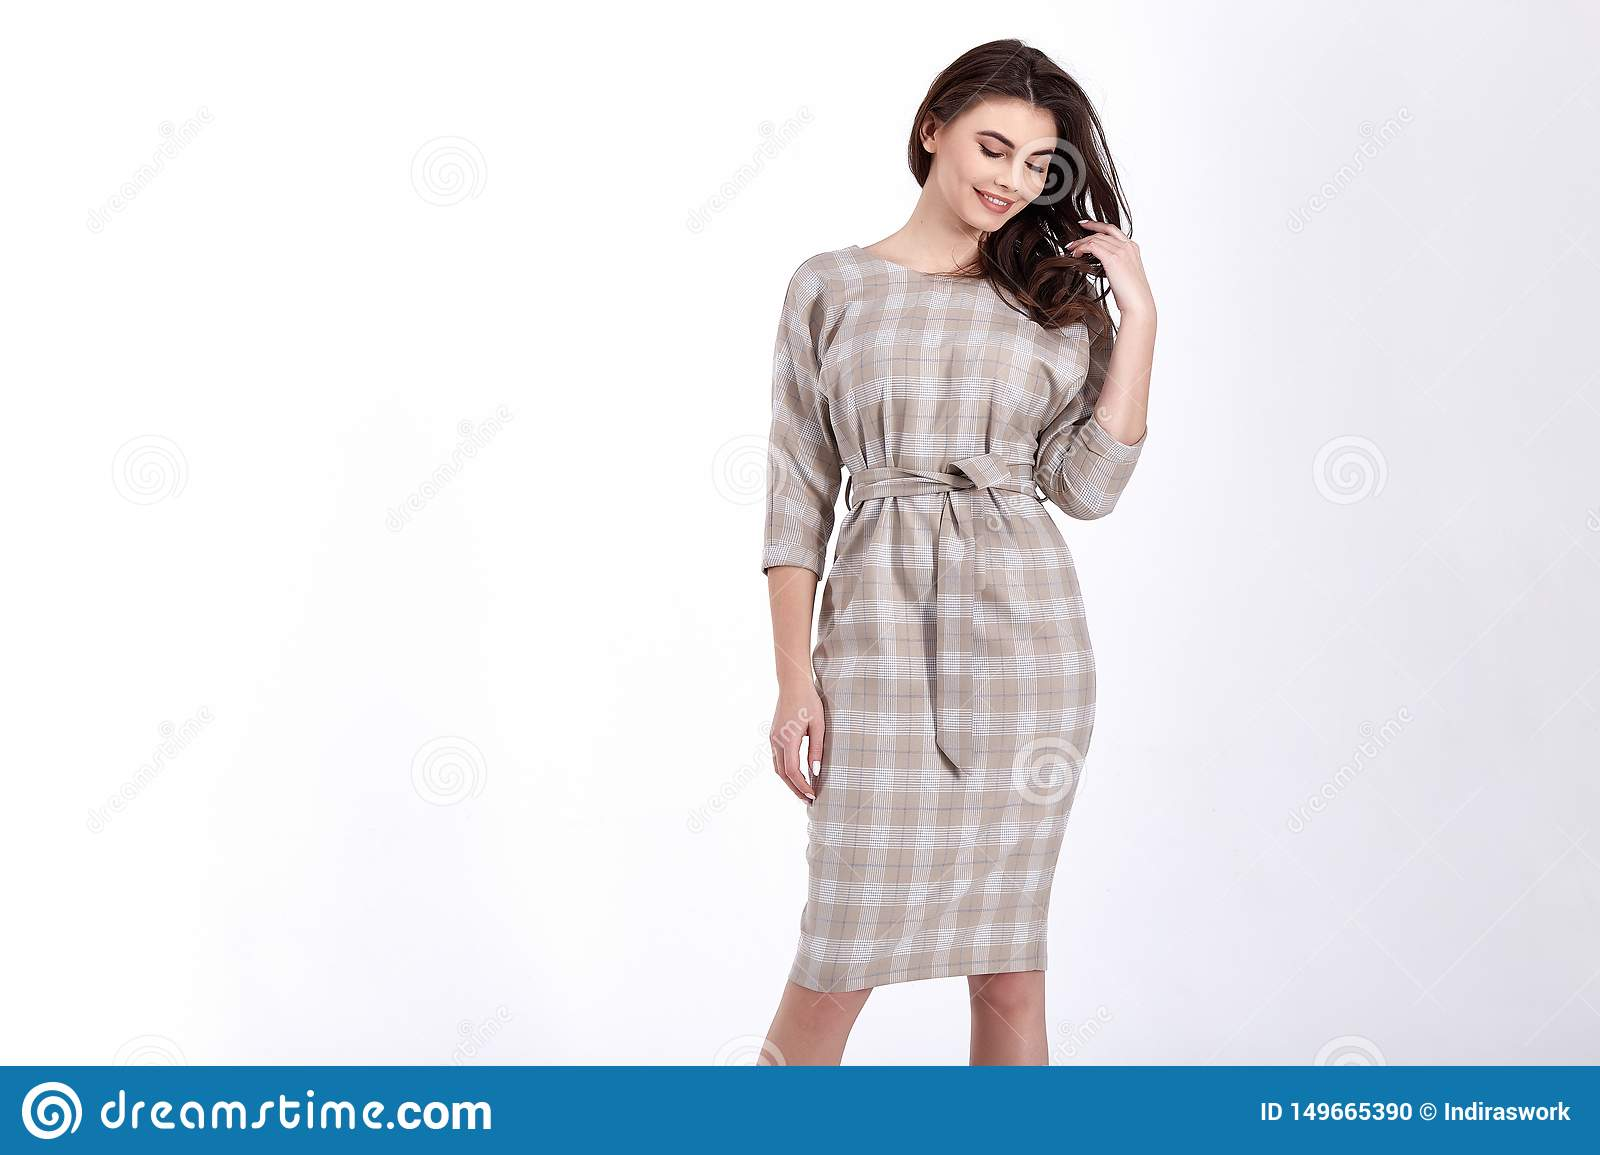 Beauty woman model wear stylish design trend clothing natural organic wool cotton dress casual formal office style for work